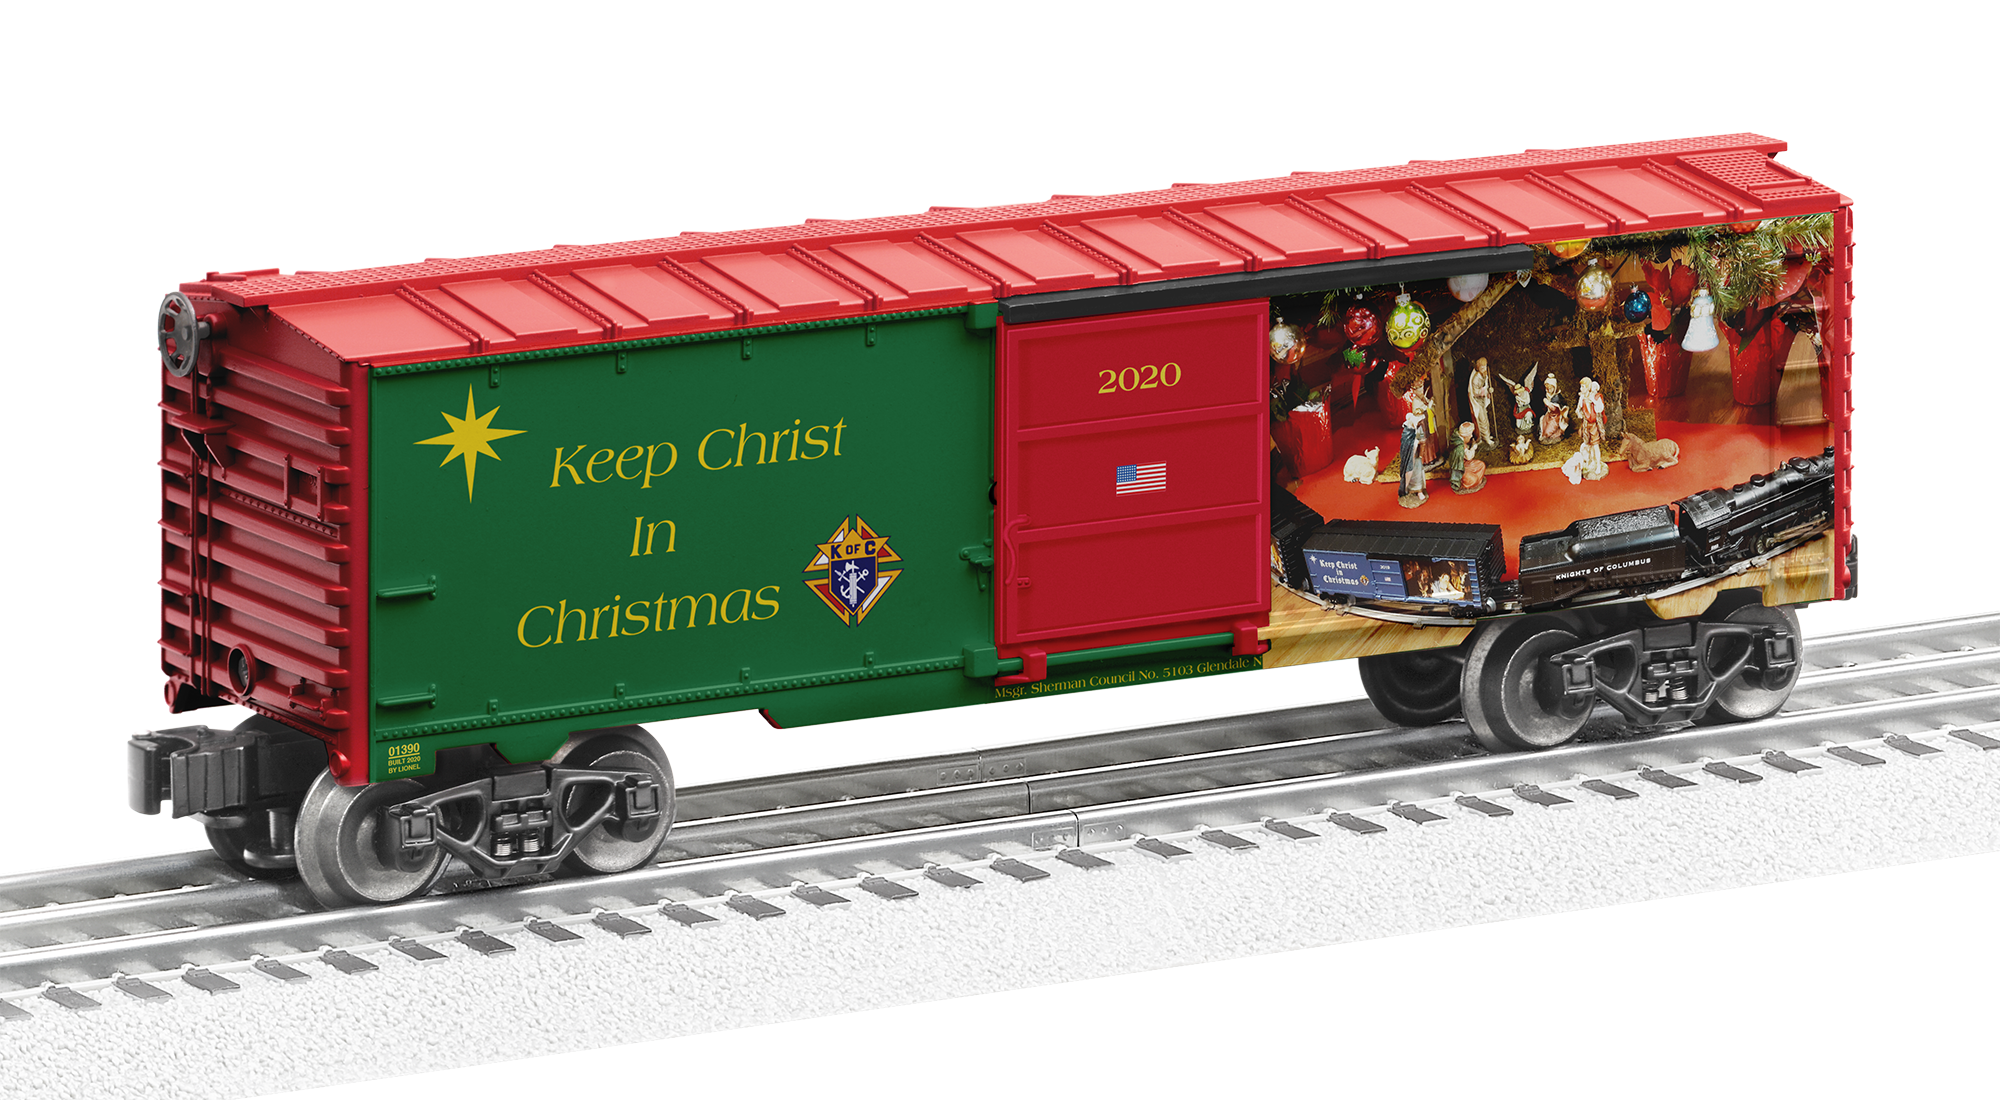 Koc Keep Christ In Christmas Order Forms 2020 Msgr. Sherman Council No 5103, Knights of Columbus – Serving our